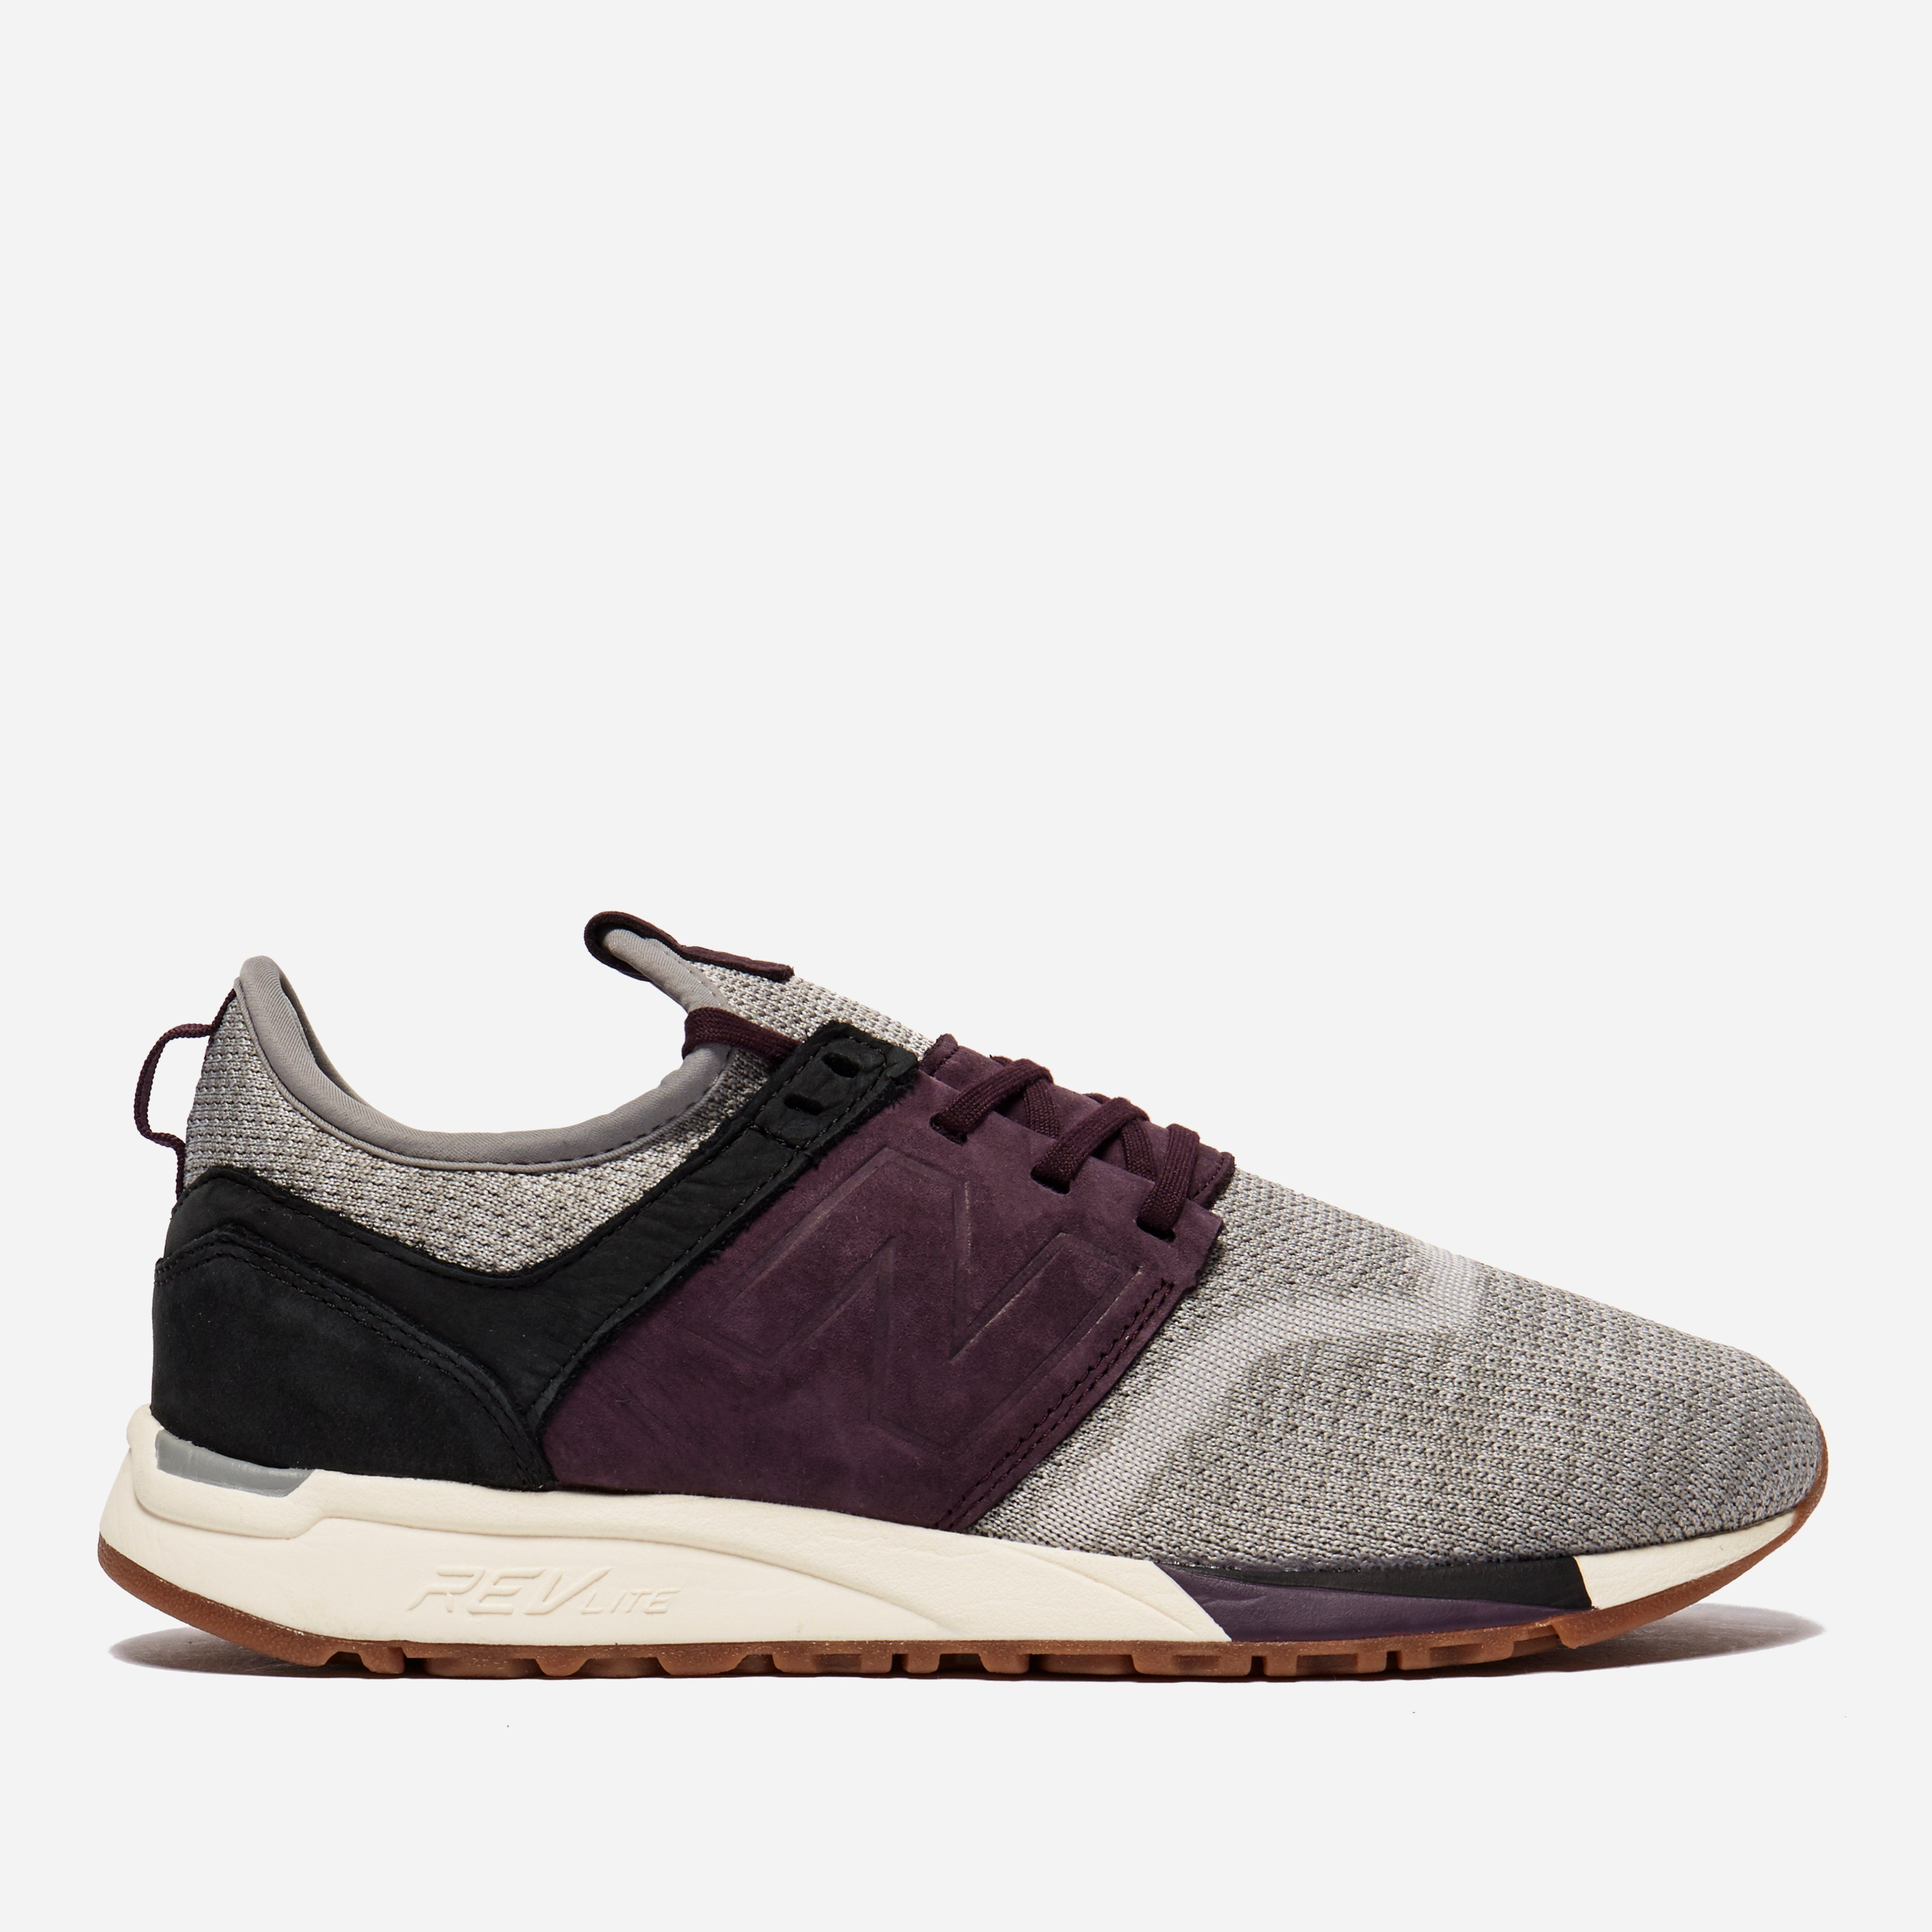 New Balance MRL247LM Made in Asia